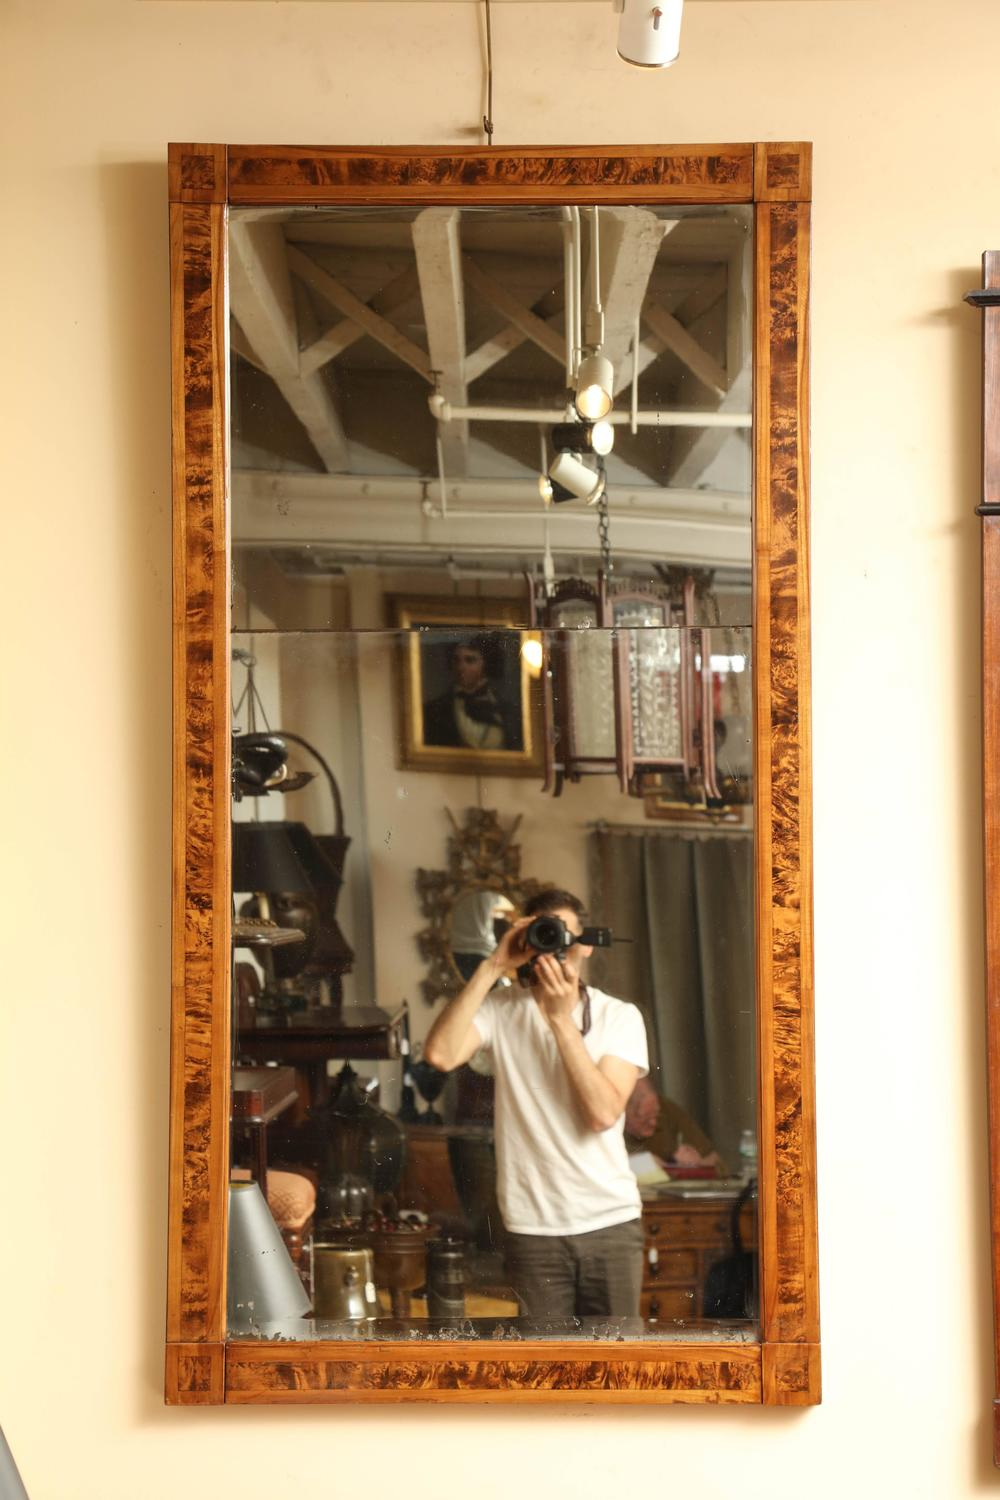 Unusual early 19th century viennese mirror for sale at 1stdibs for 123 william street 19th floor new york ny 10038